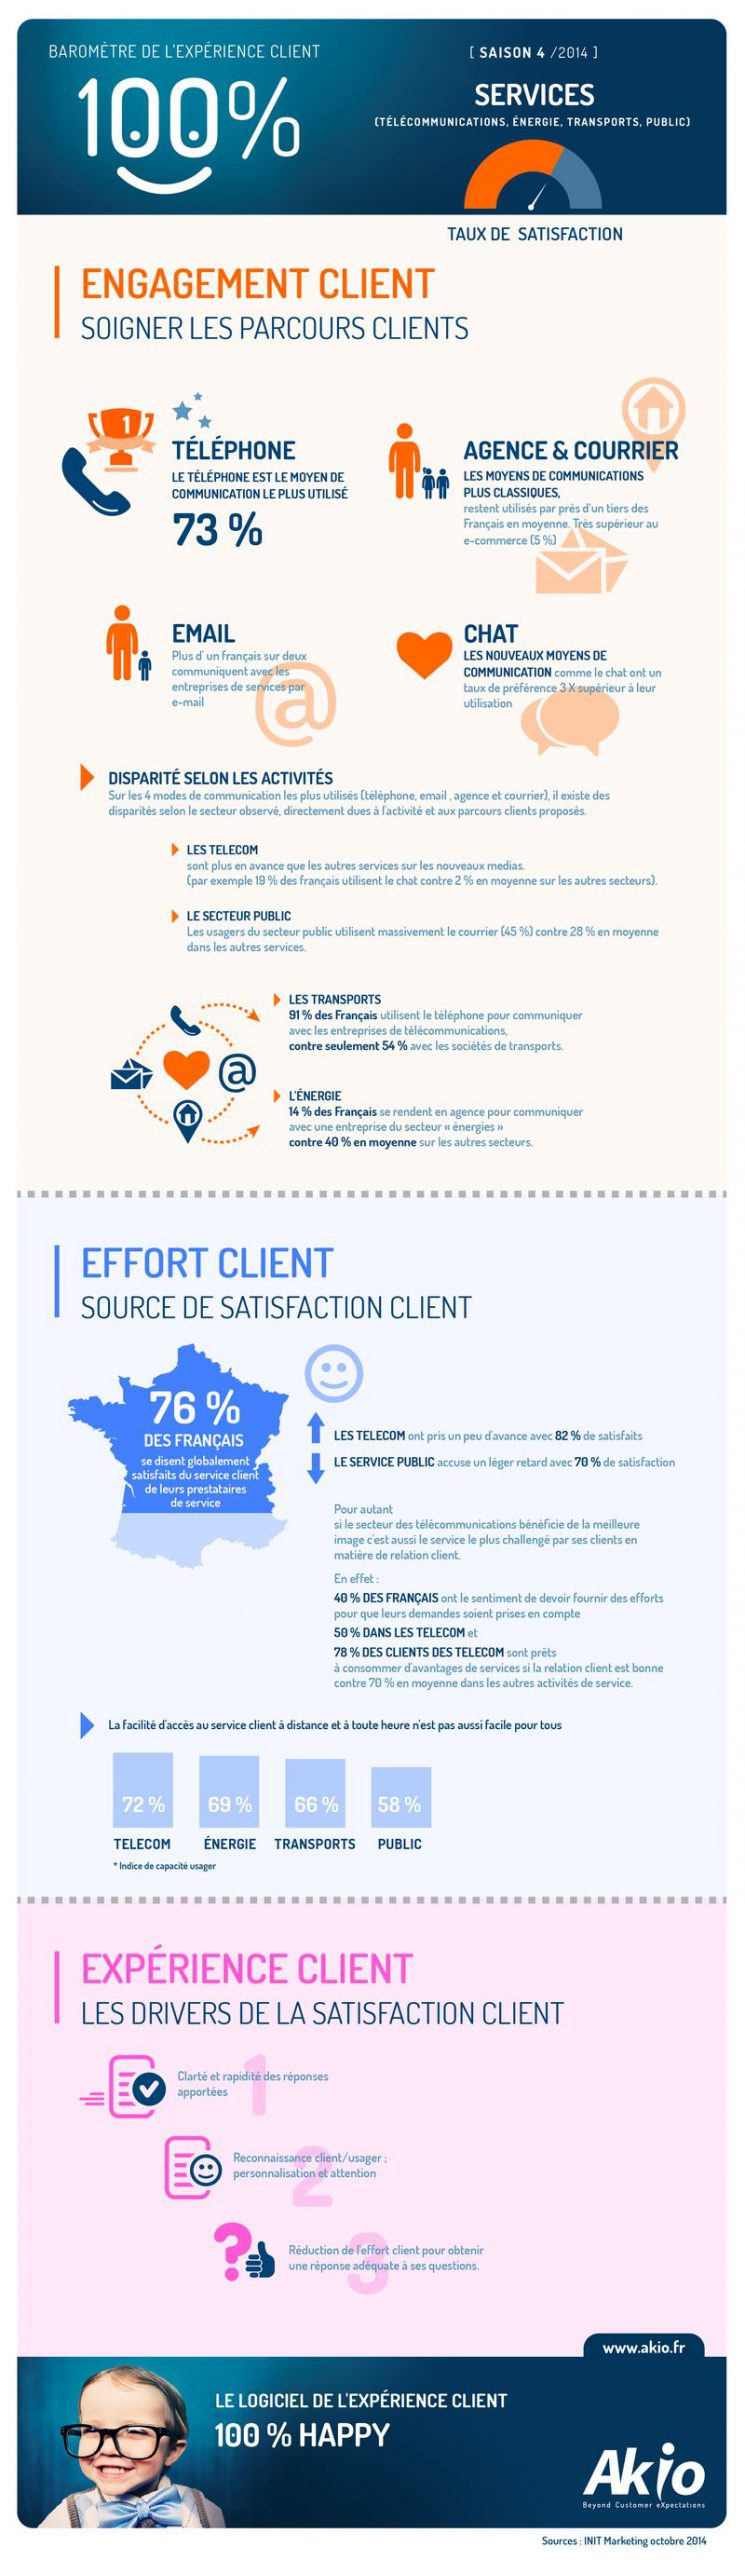 2014-AKIO-InfoHD-Experience-client-Services-800